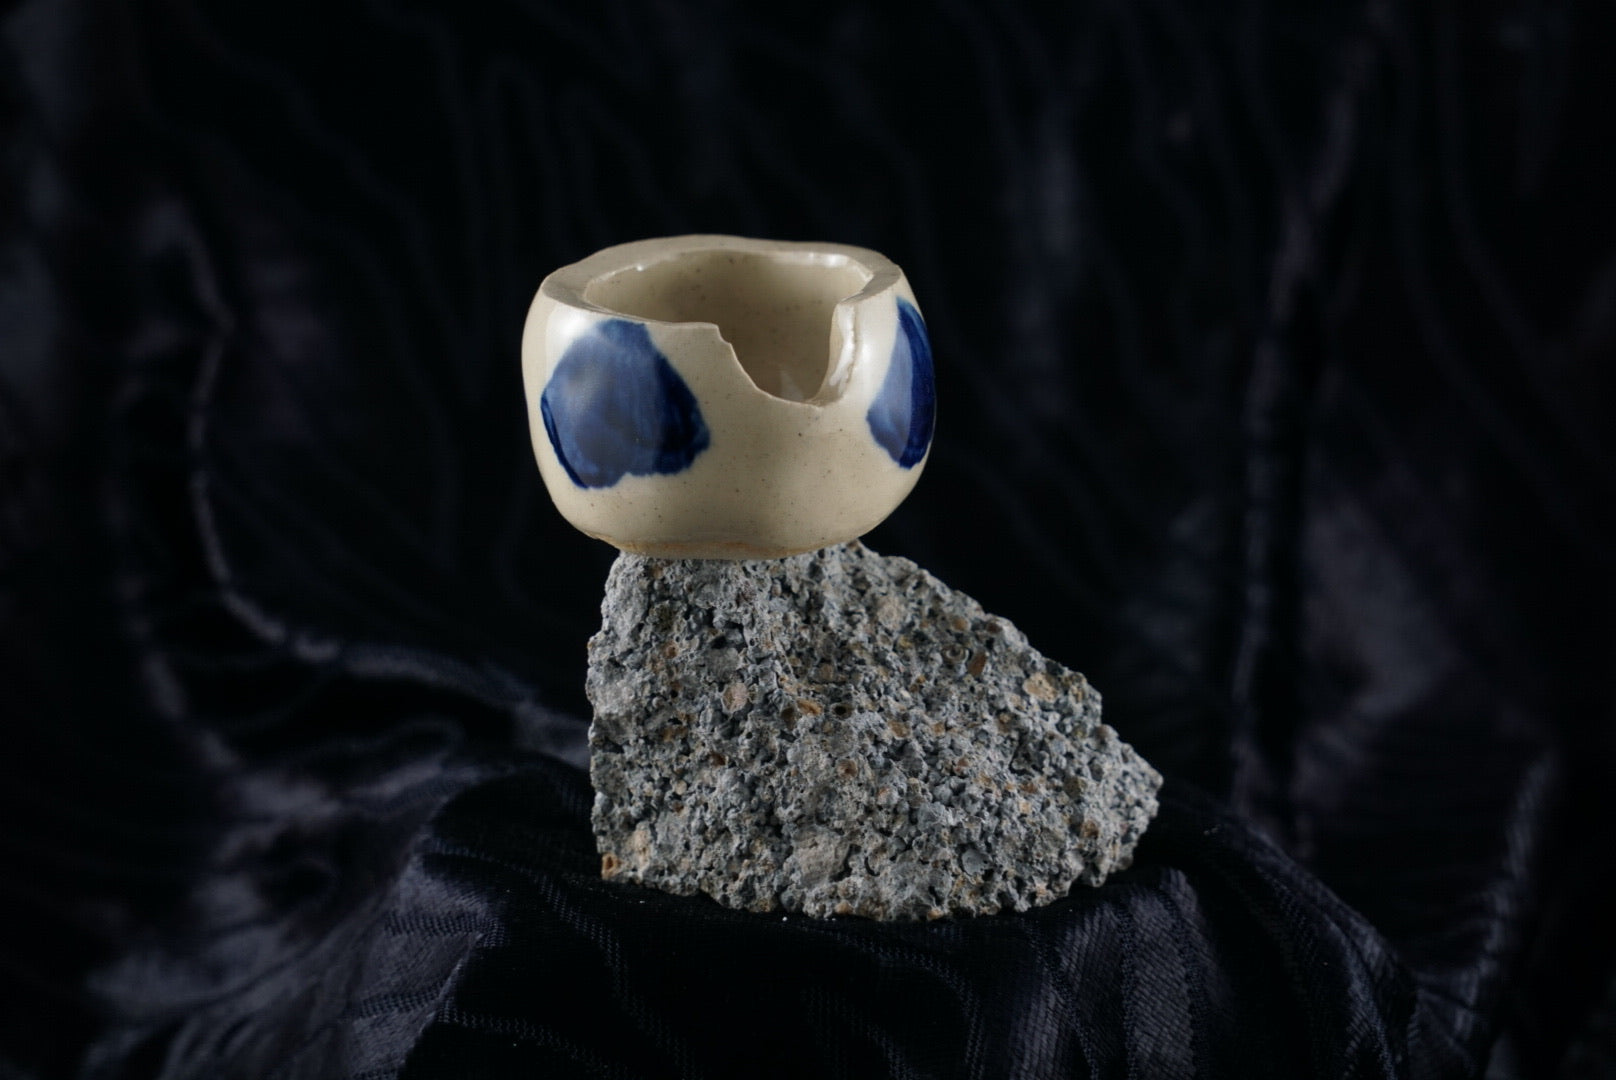 Small, handmade, white and blue ceramic ashtray molded around a piece of black rock